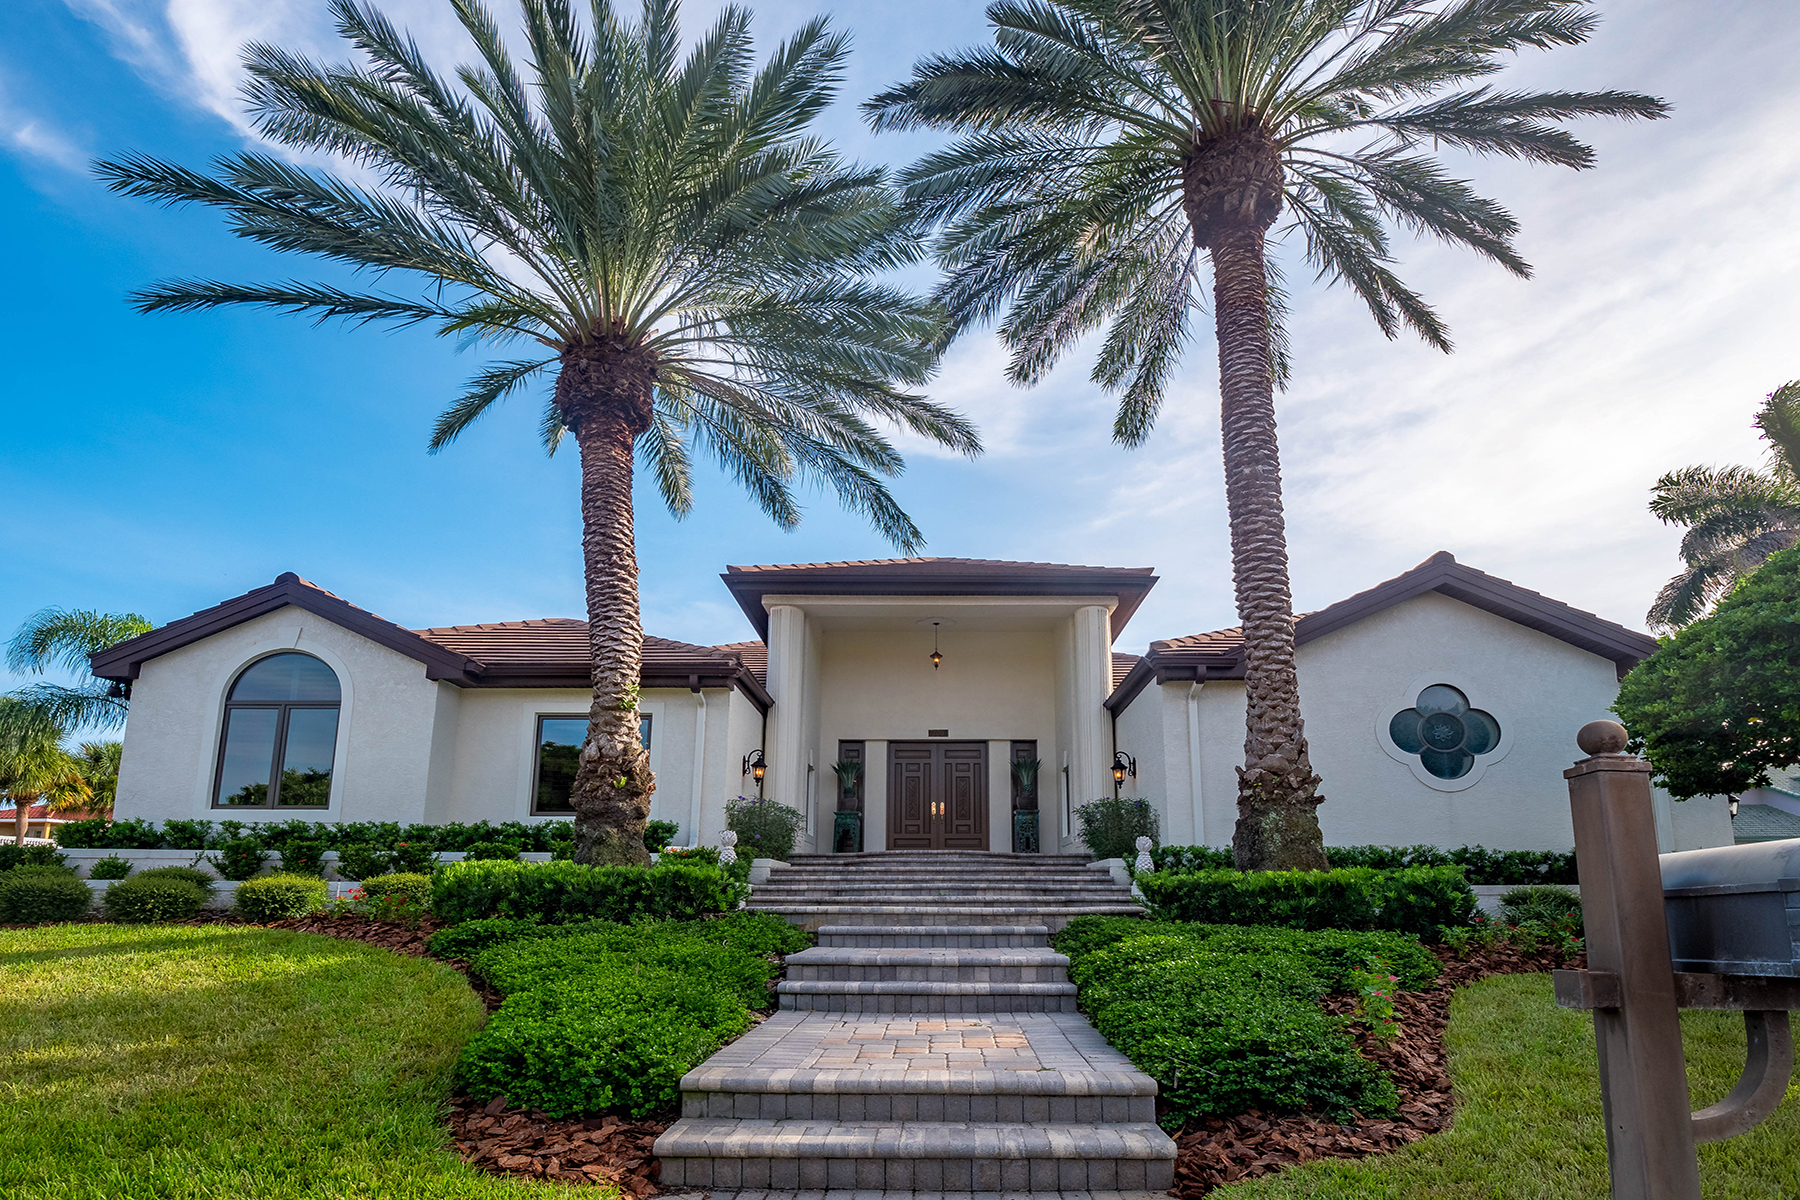 Single Family Homes for Sale at 700 Pinta Dr Tierra Verde, Florida 33715 United States